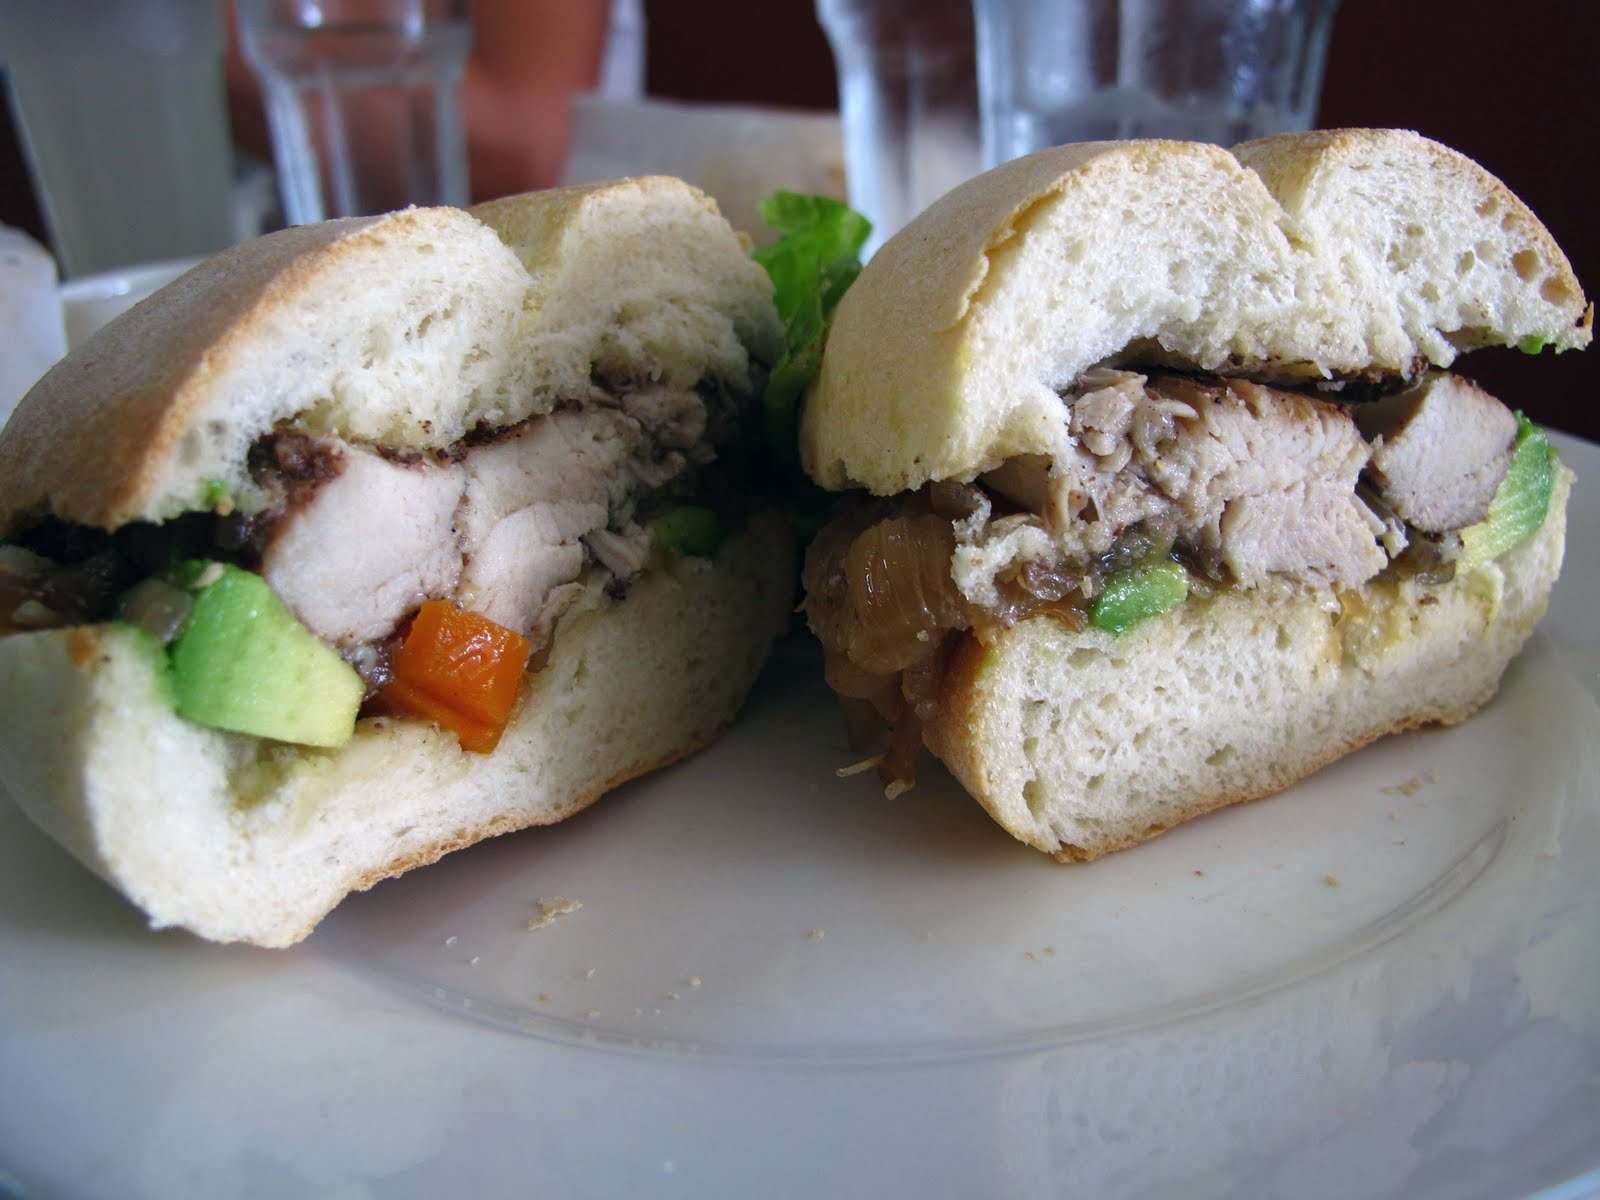 Top 40 Sandwiches Of Western Queens moreover Schools education together with 165718461263833609 besides Top 40 Sandwiches Of Western Queens moreover Top 40 Sandwiches Of Western Queens. on top 40 sandwiches of western queens